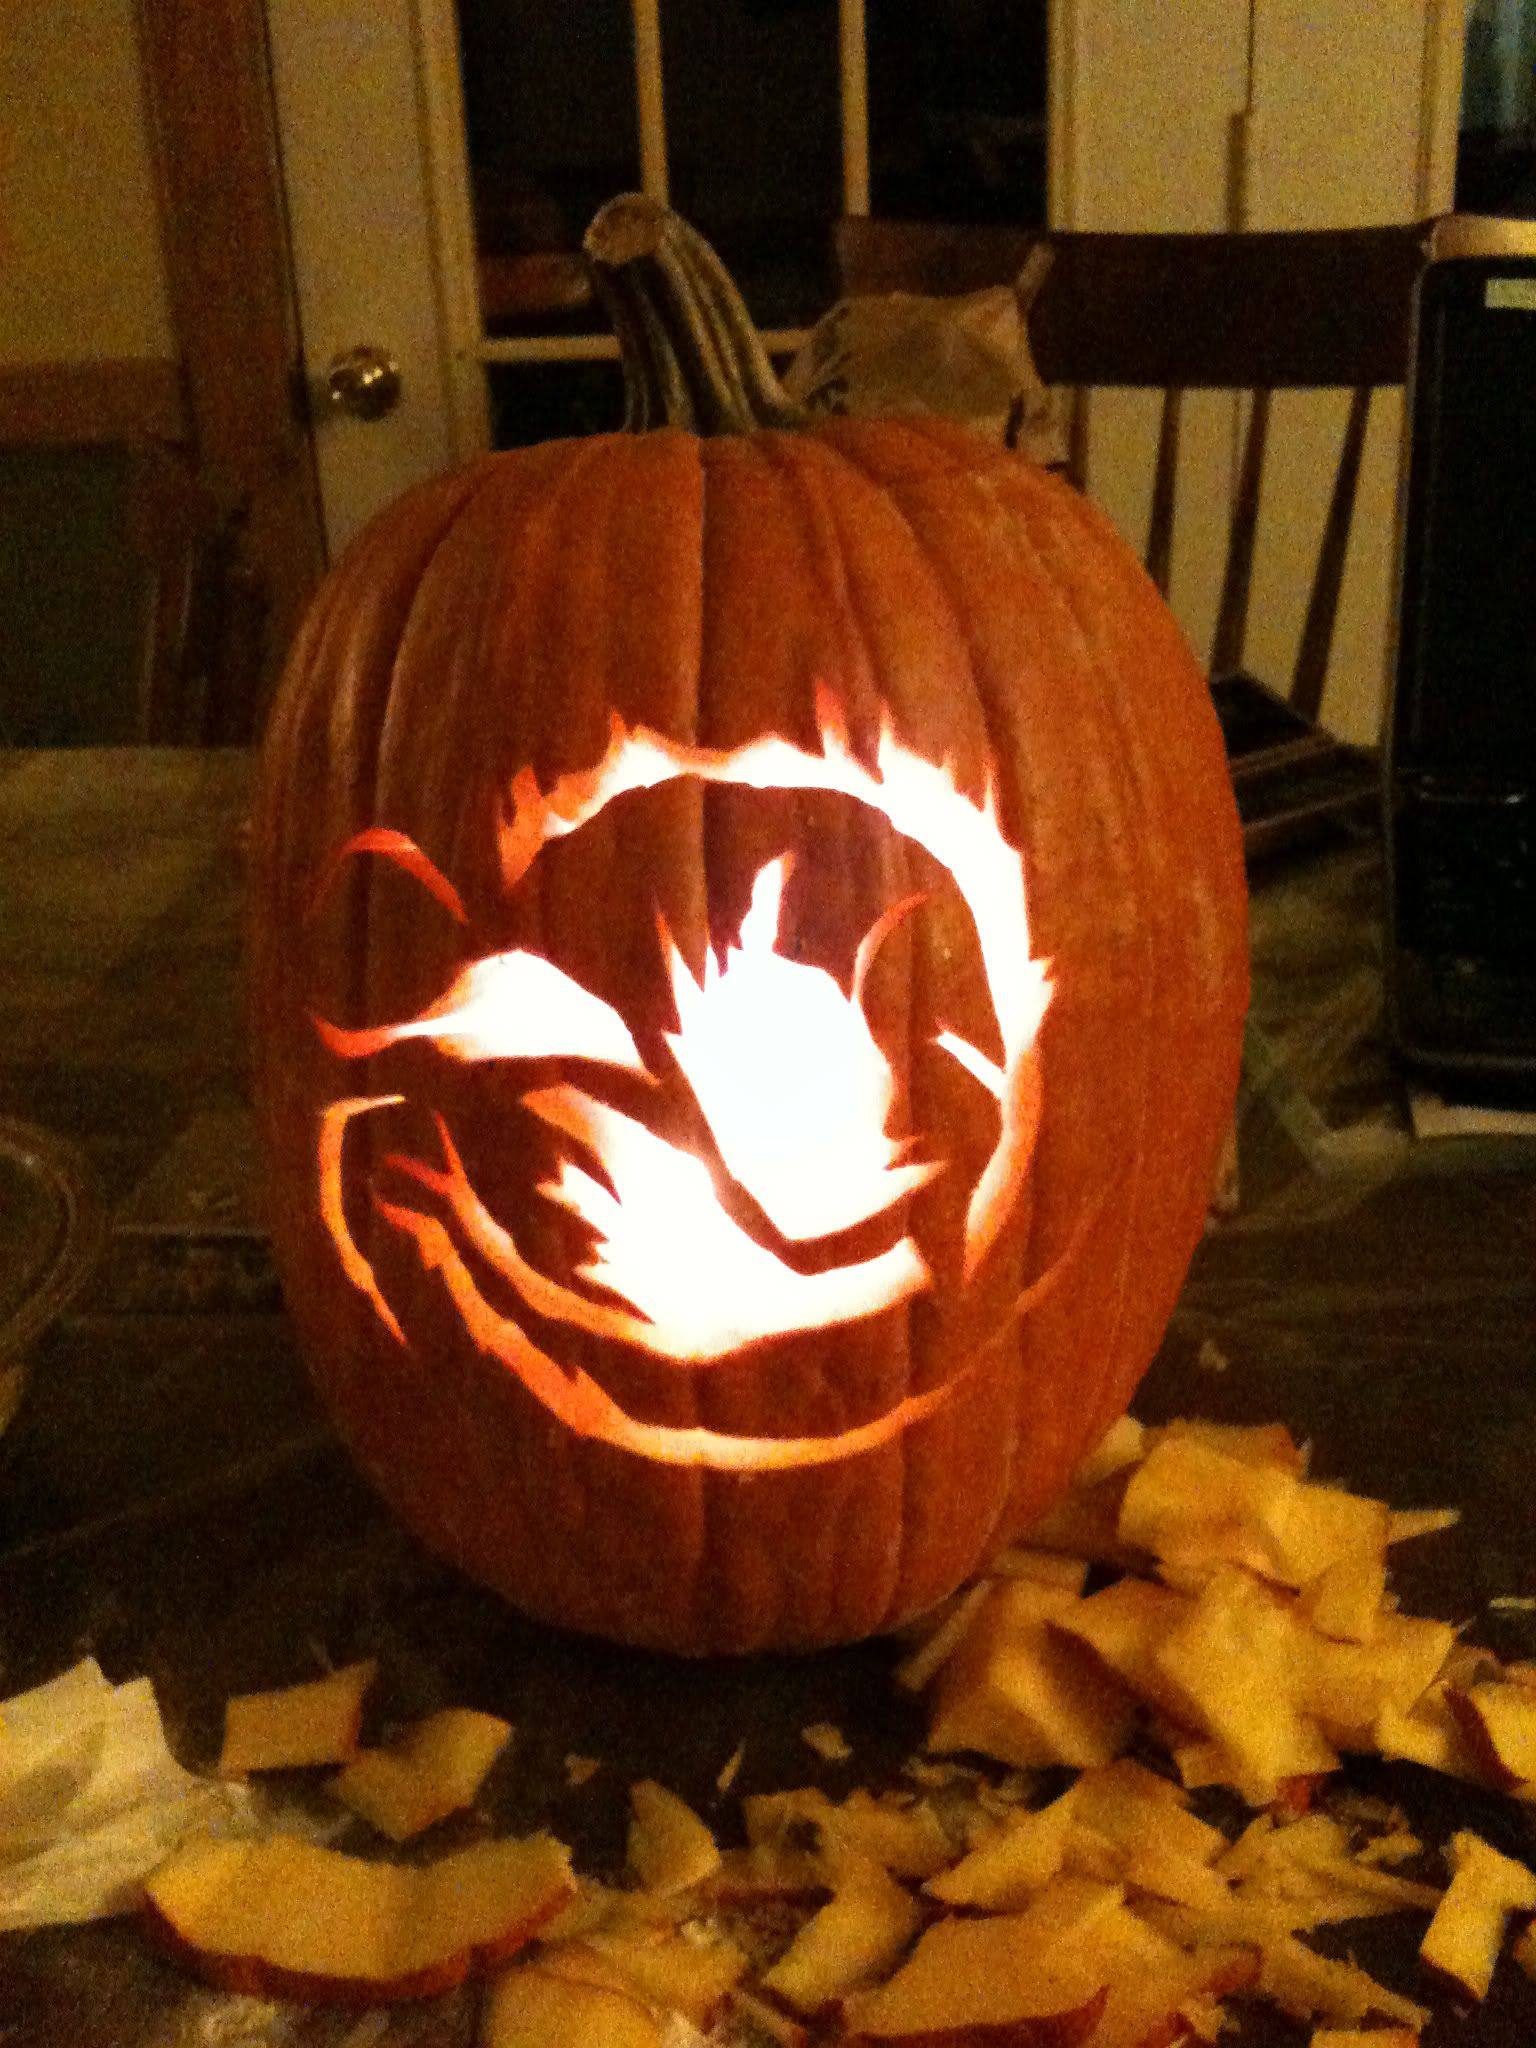 Pumpkin pattern for DIVERGENT by Veronica Roth. I want to know how to do that for Amity